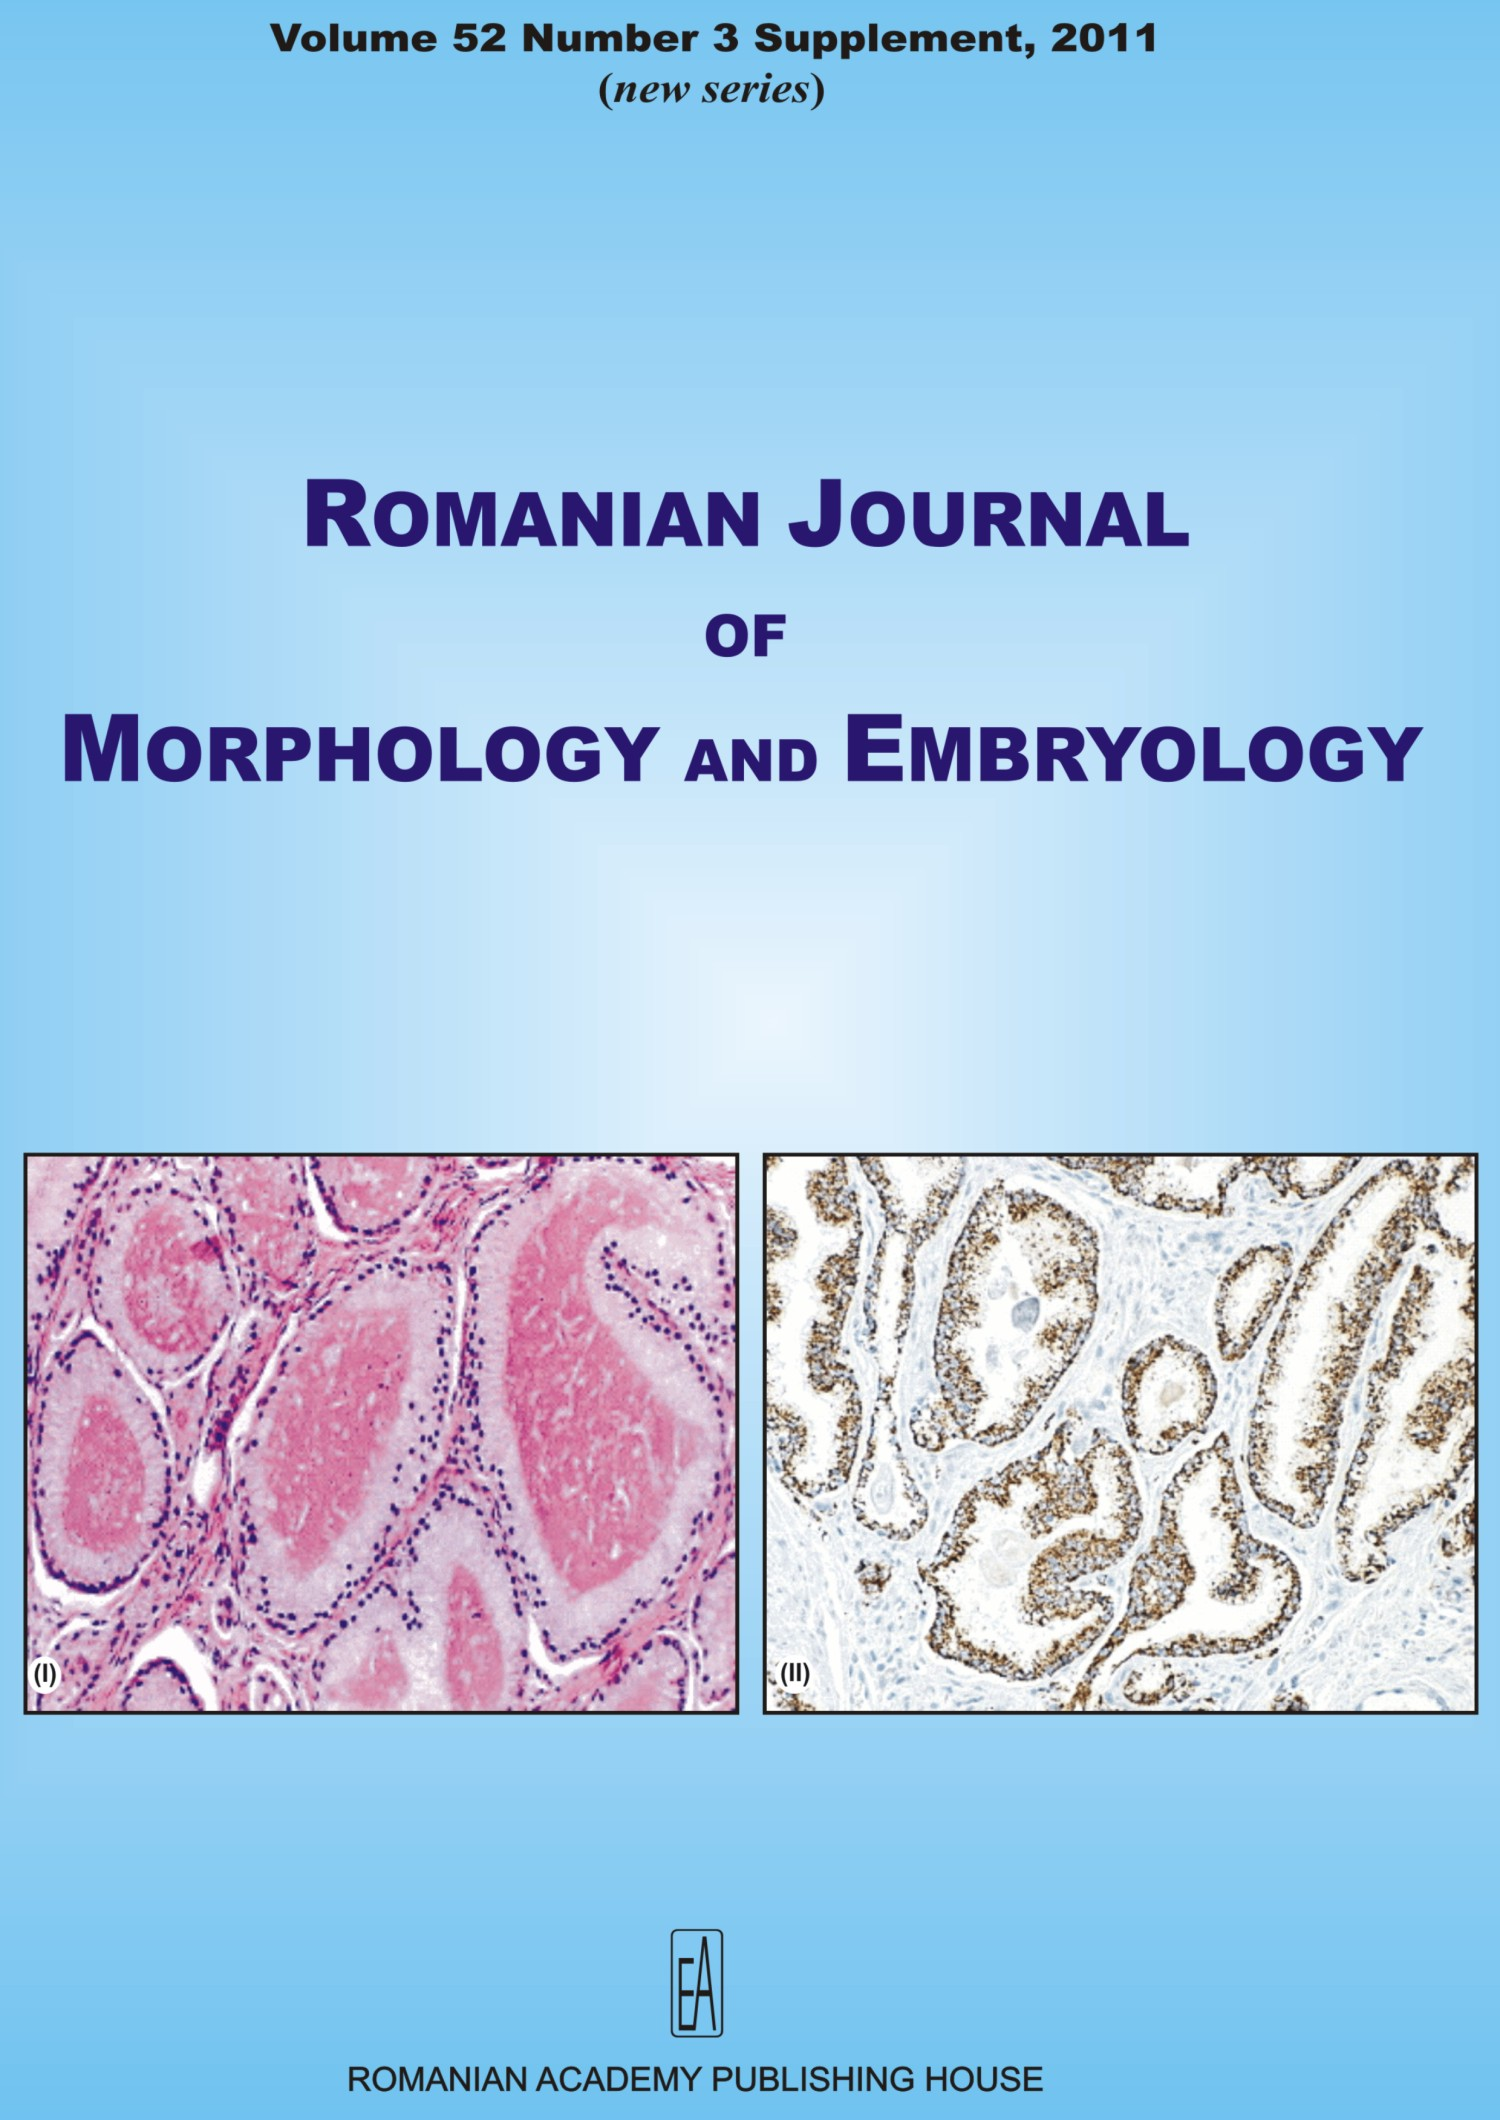 Romanian Journal of Morphology and Embryology, vol. 52 no. 3Suppl, 2011